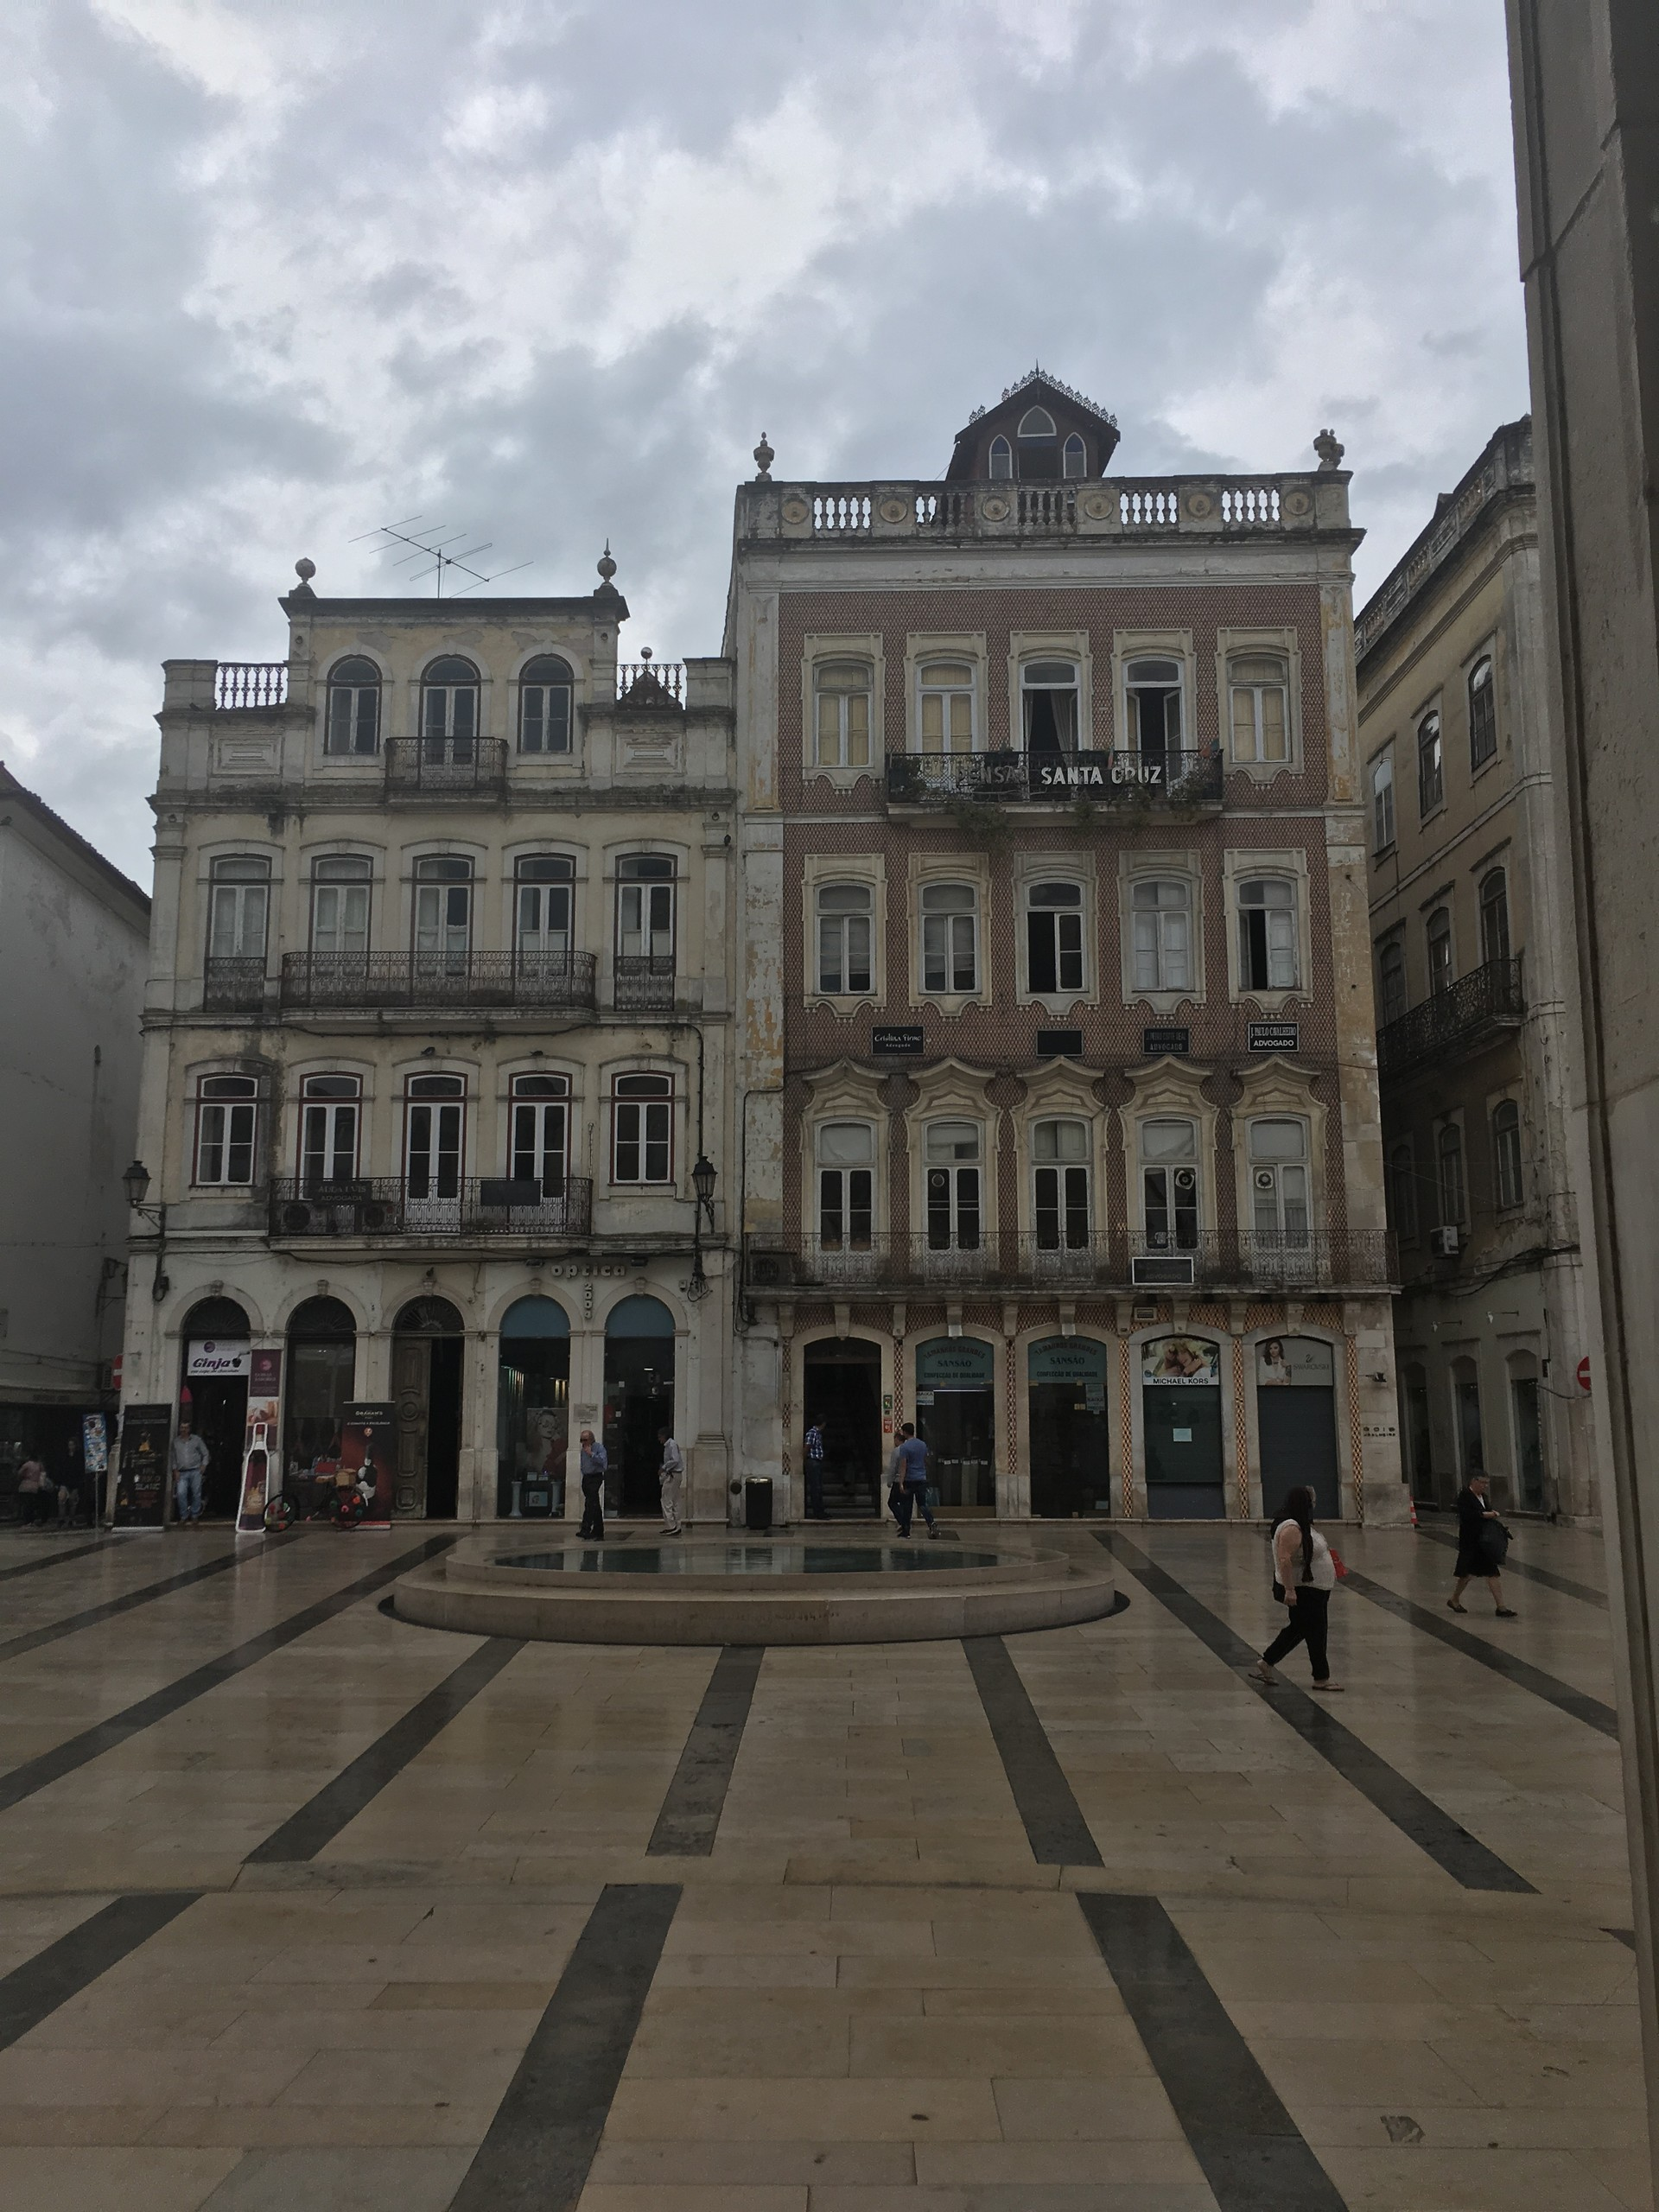 Most beautiful square in Coimbra